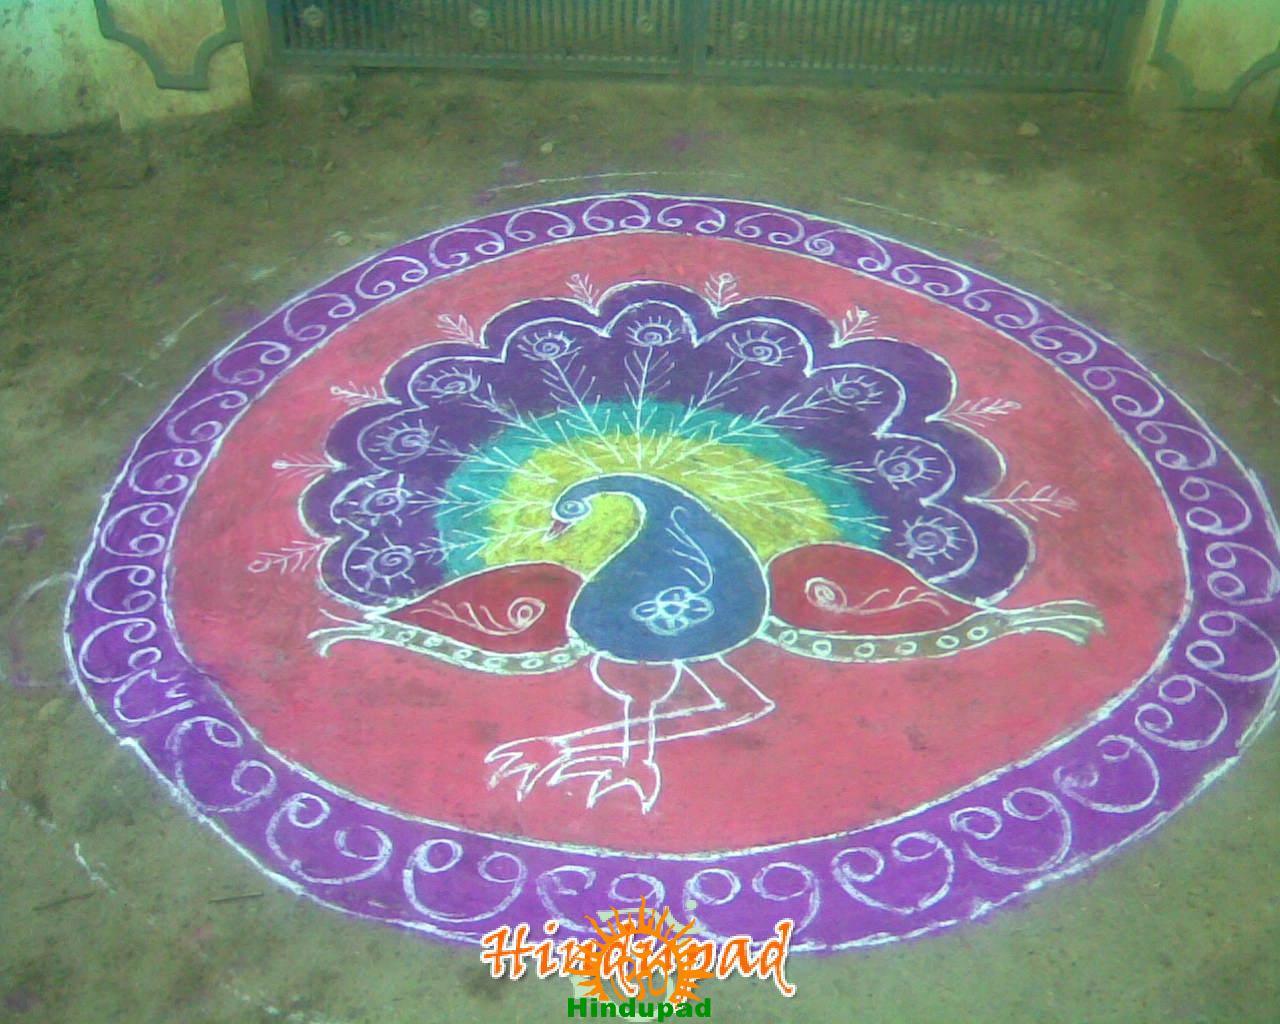 Rangoli Designs For Competition With Concepts Sankranthi muggu 1